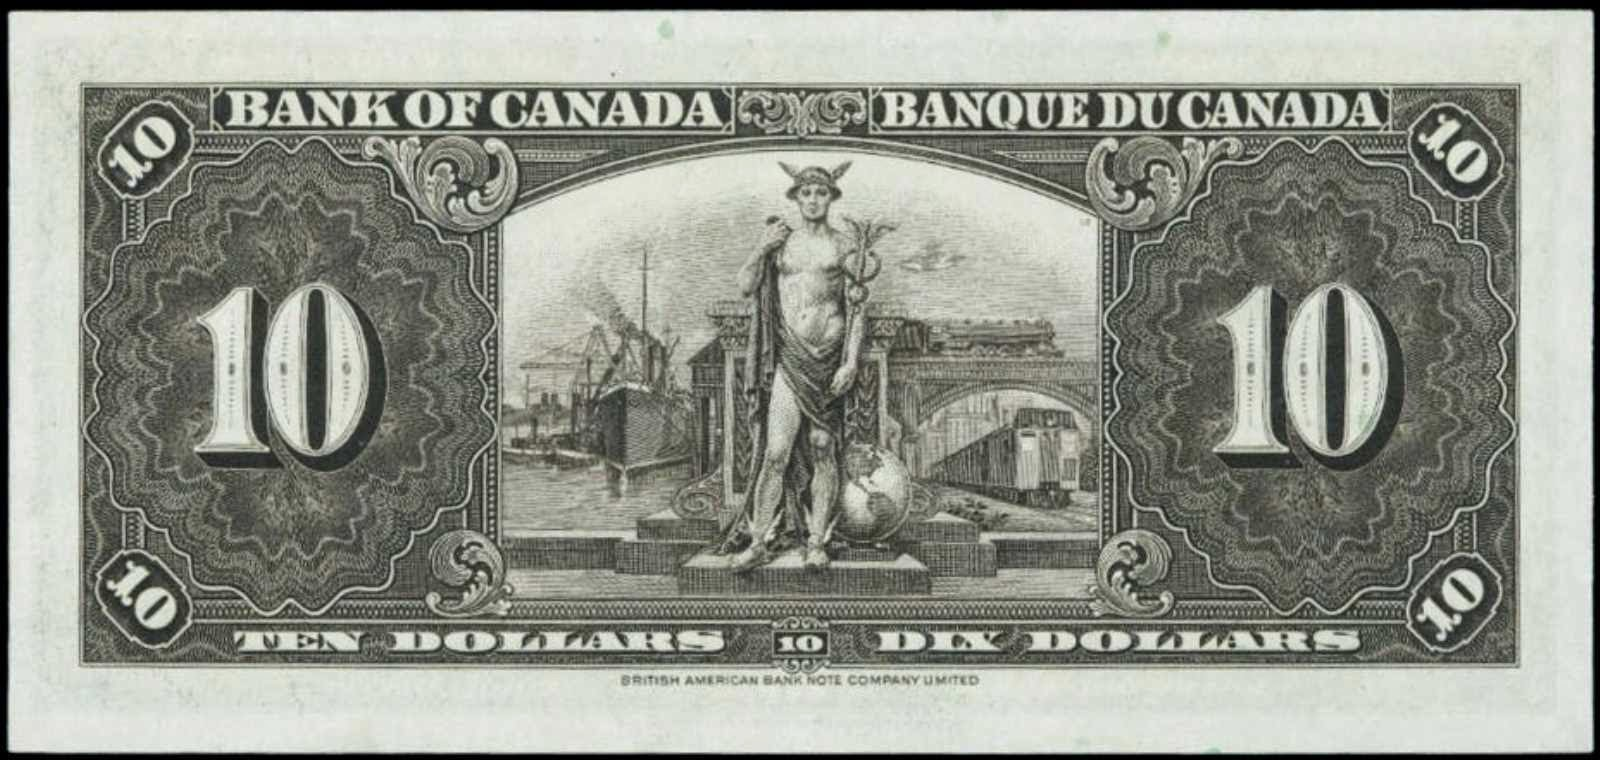 1937 Canadian 10 Dollar Bank Note